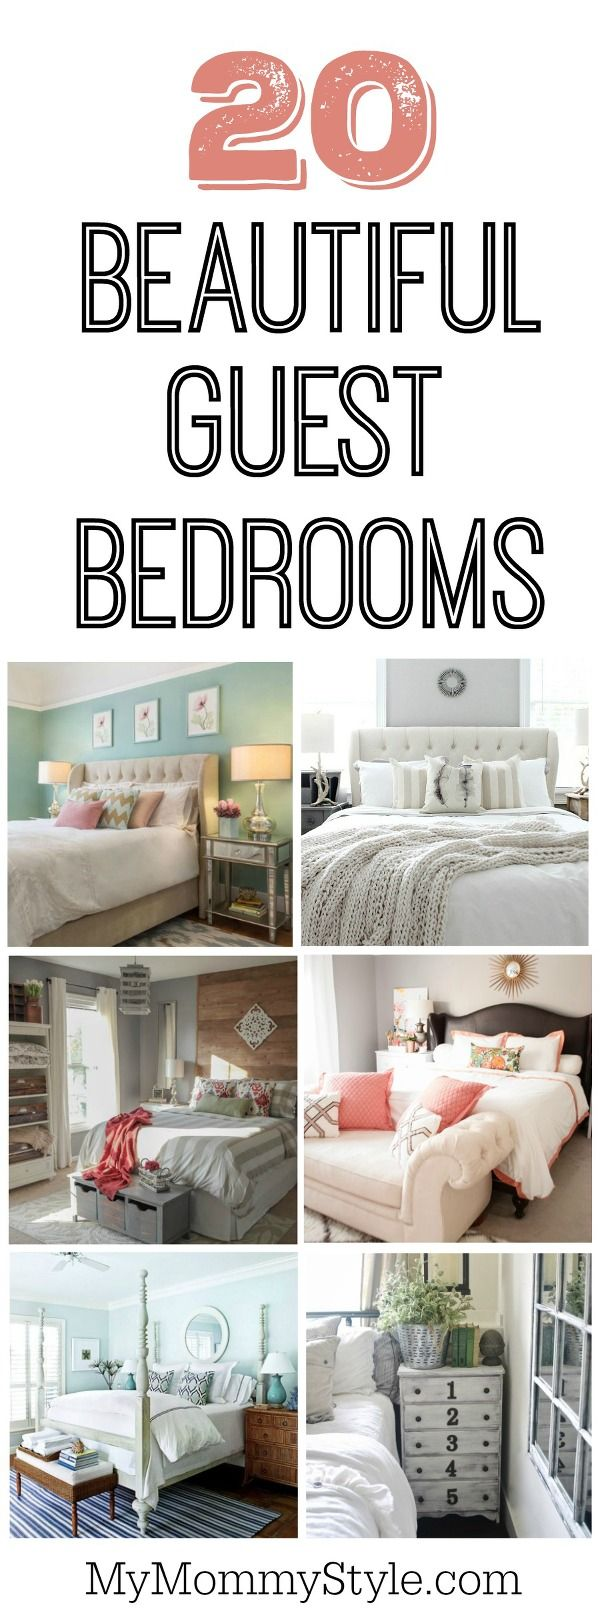 20 Beautiful Guest Bedroom Ideas My Mommy Style Small Guest Bedroom Guest Bedroom Decor Guest Bedrooms